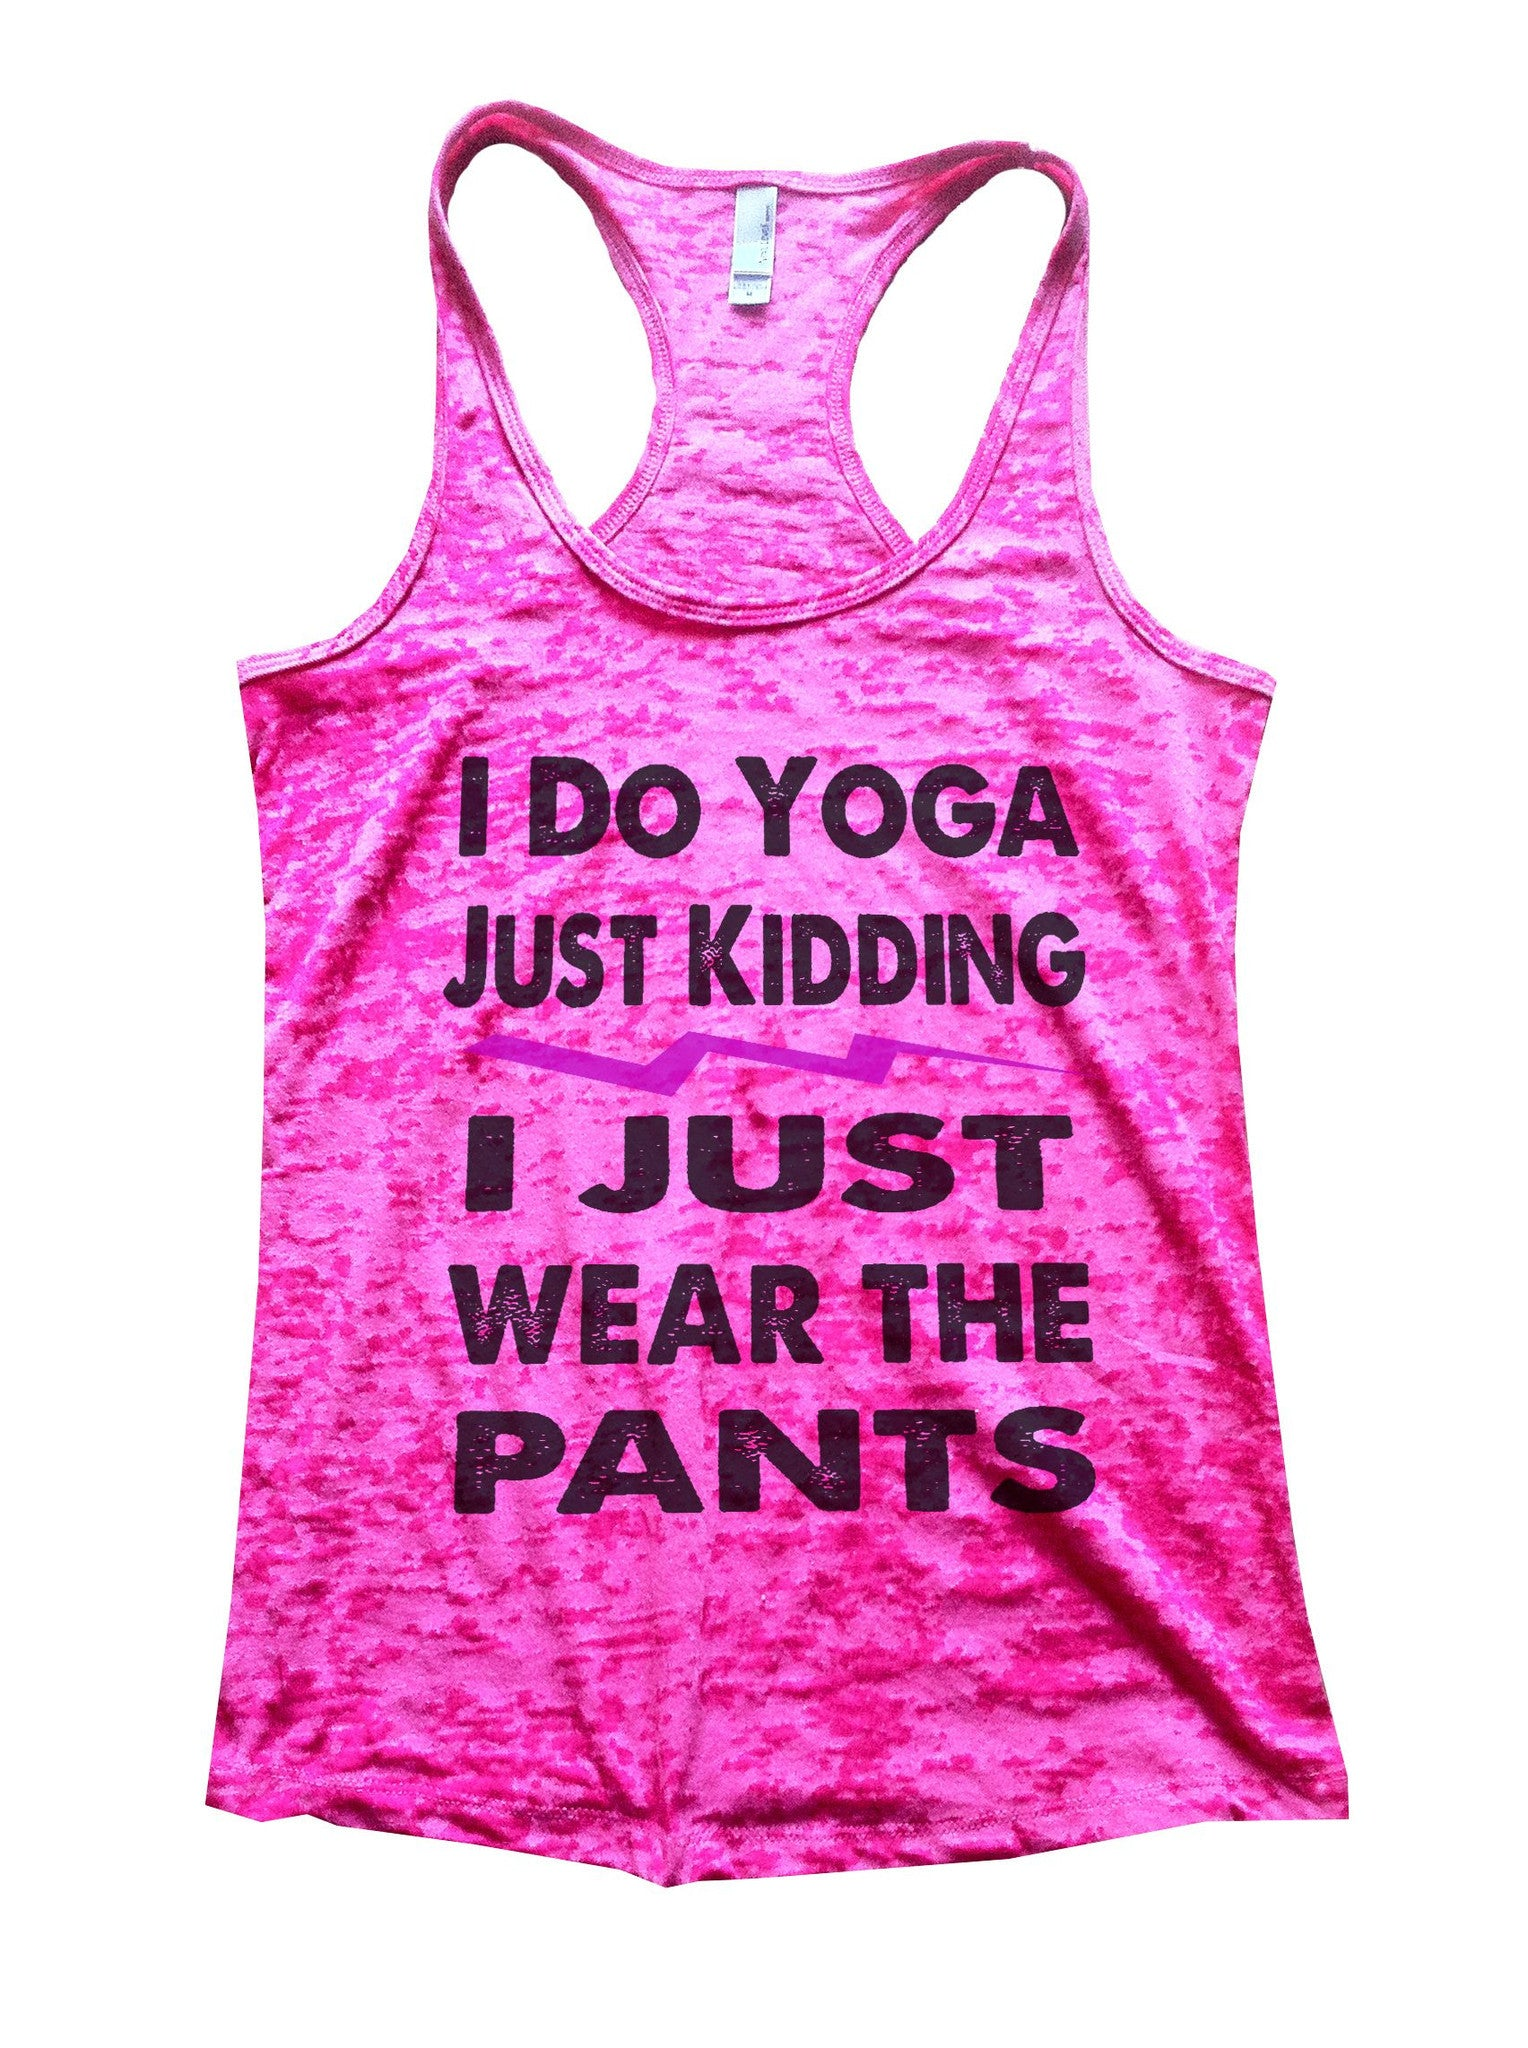 I Do Yoga Just Kidding I Just Wear The Pants Burnout Tank Top By BurnoutTankTops.com - 633 - Funny Shirts Tank Tops Burnouts and Triblends  - 4